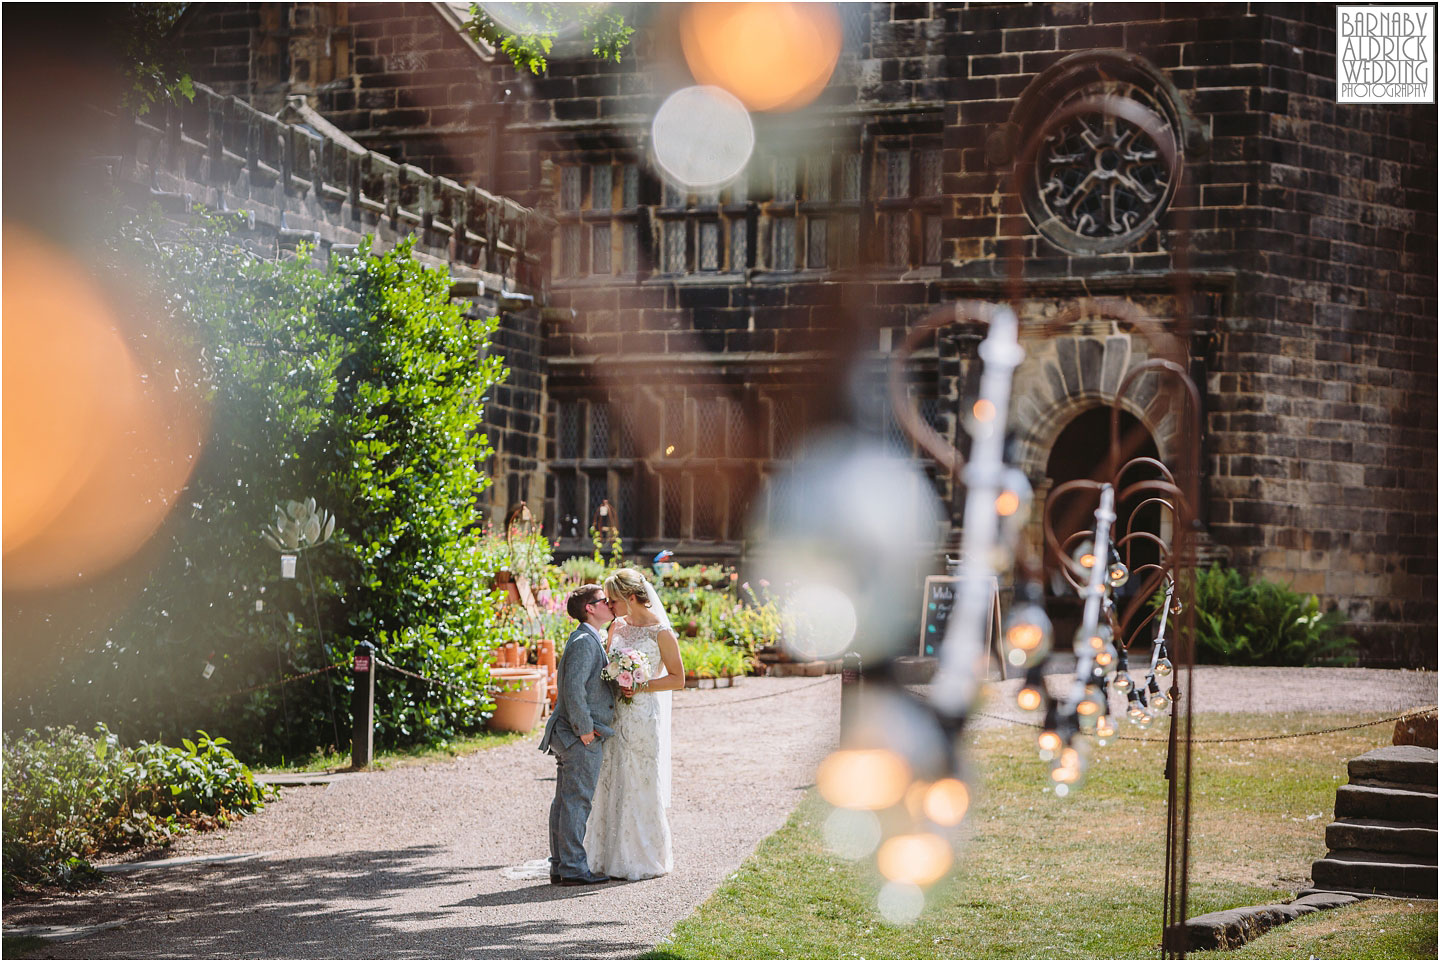 Gay wedding photography at East Riddlesden Hall in Yorkshire